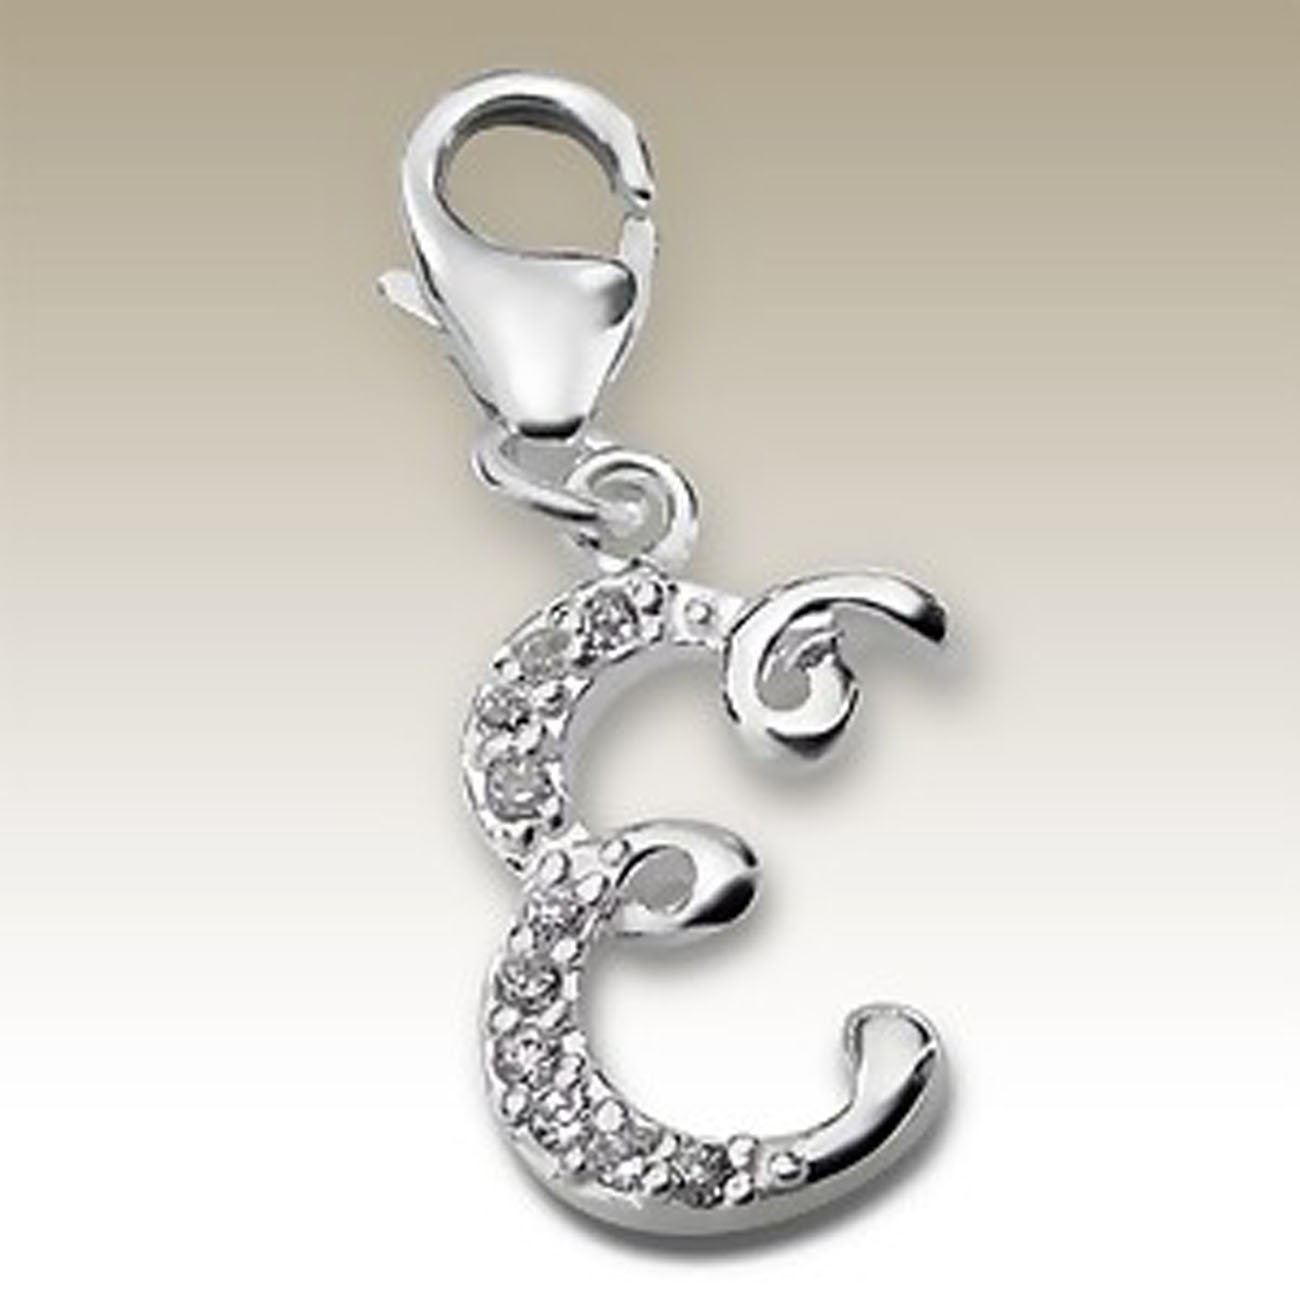 Alphabet E Charm with Lobster Clasp Sterling Silver 925 CZ Stones (E13653)